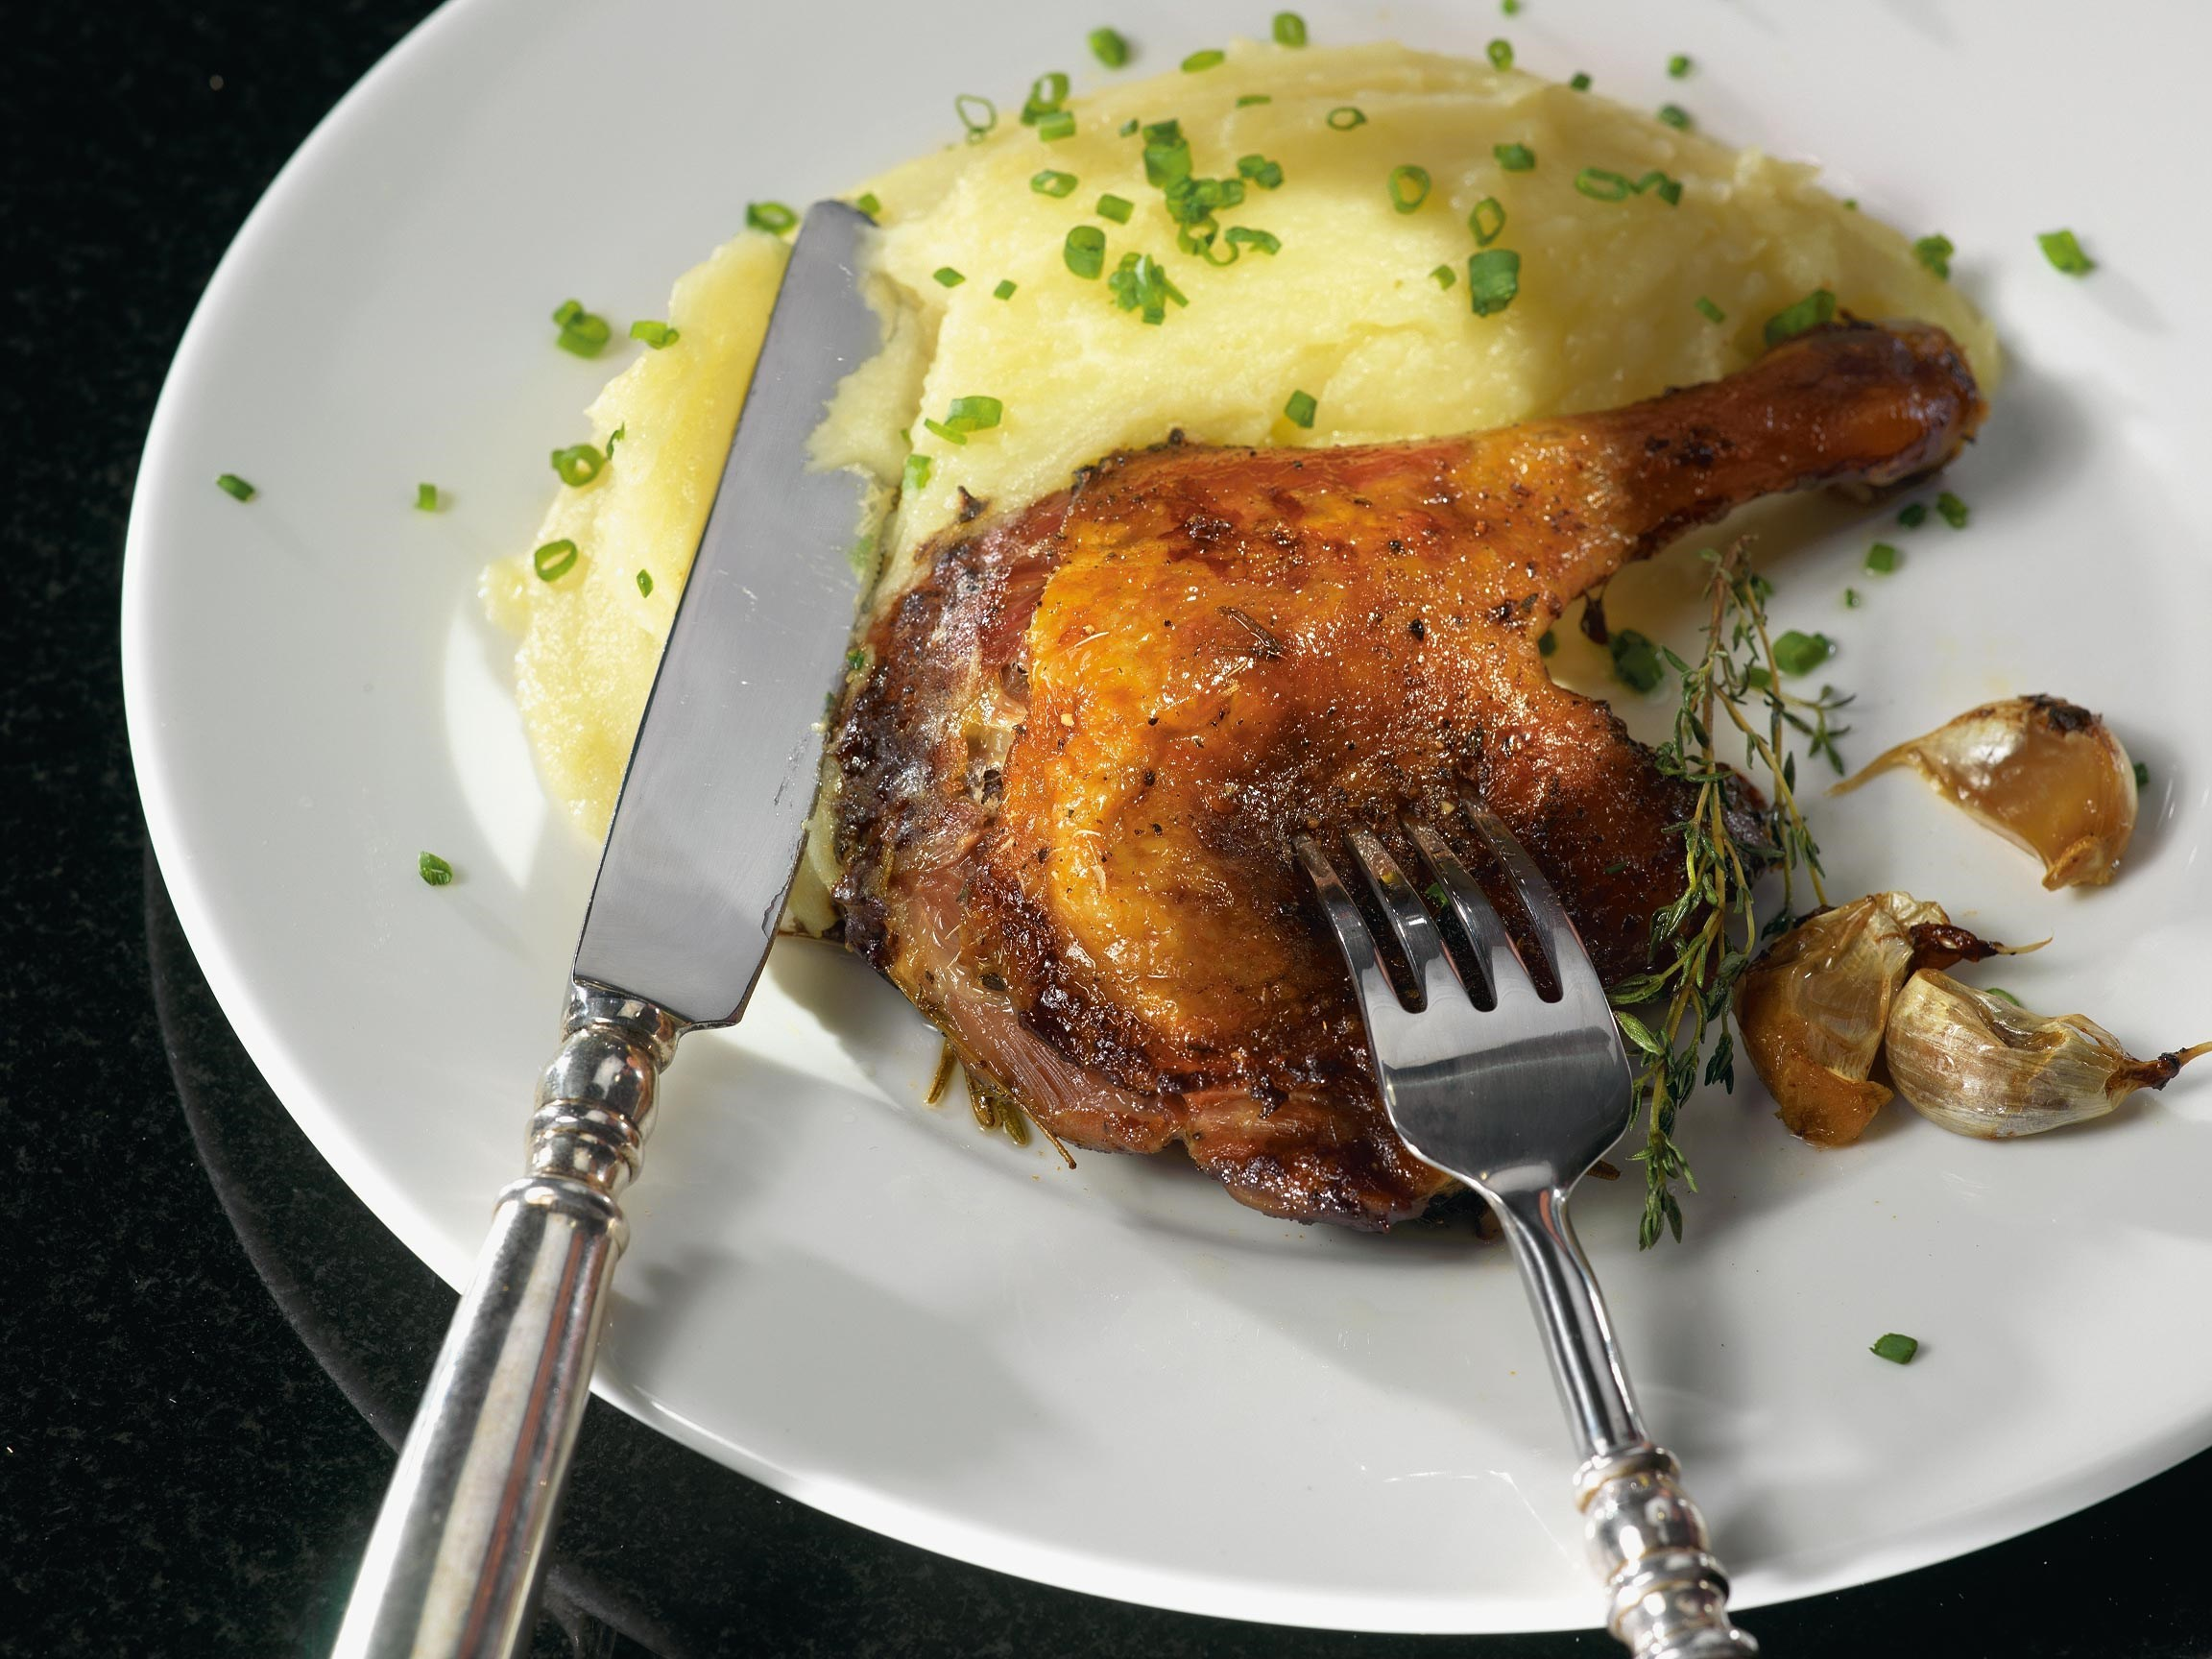 Duck confit with mashed potatoes